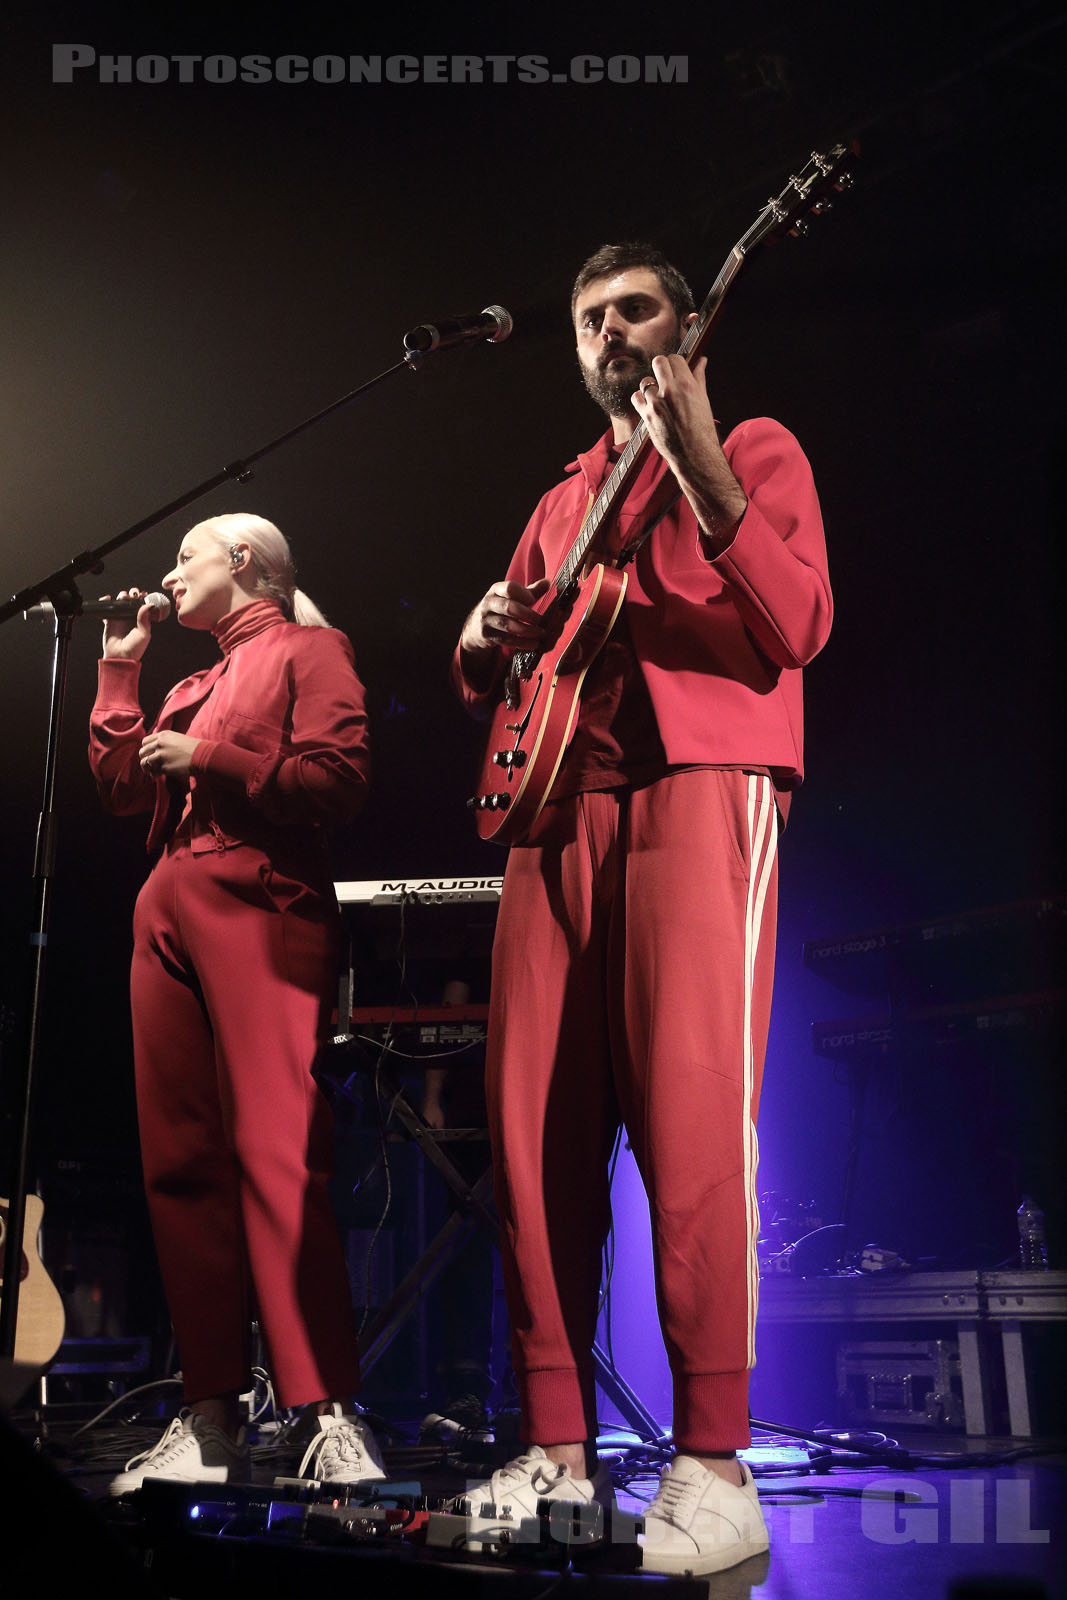 MADAME MONSIEUR - 2018-10-19 - PARIS - La Machine (du Moulin Rouge)